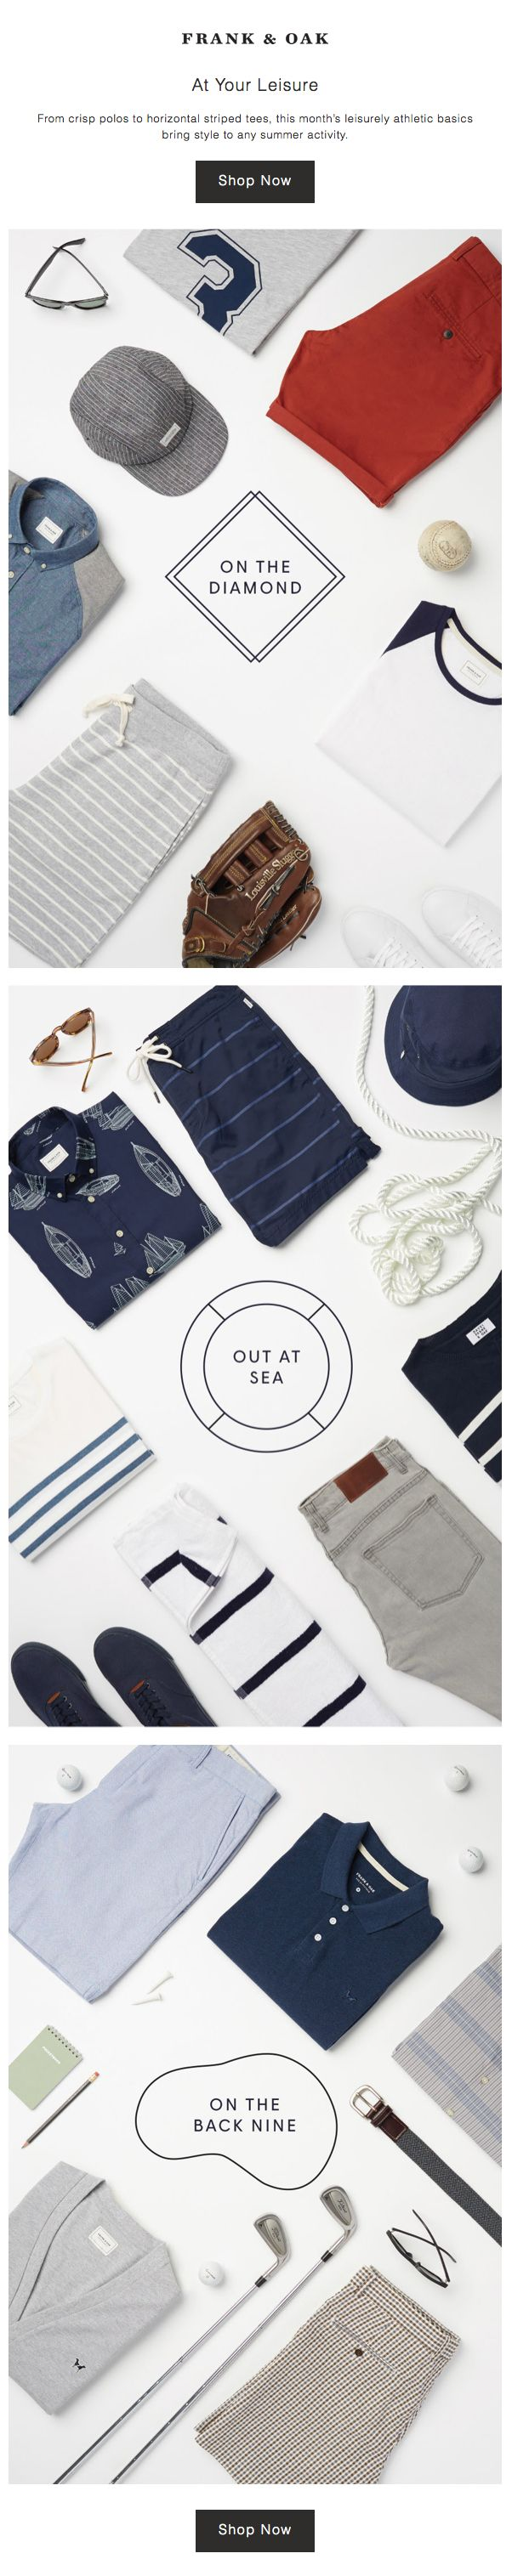 Loves Data Loves || Email Marketing || Frank Oak : Laydowns | Flatlay #flatlay #emailmarketing